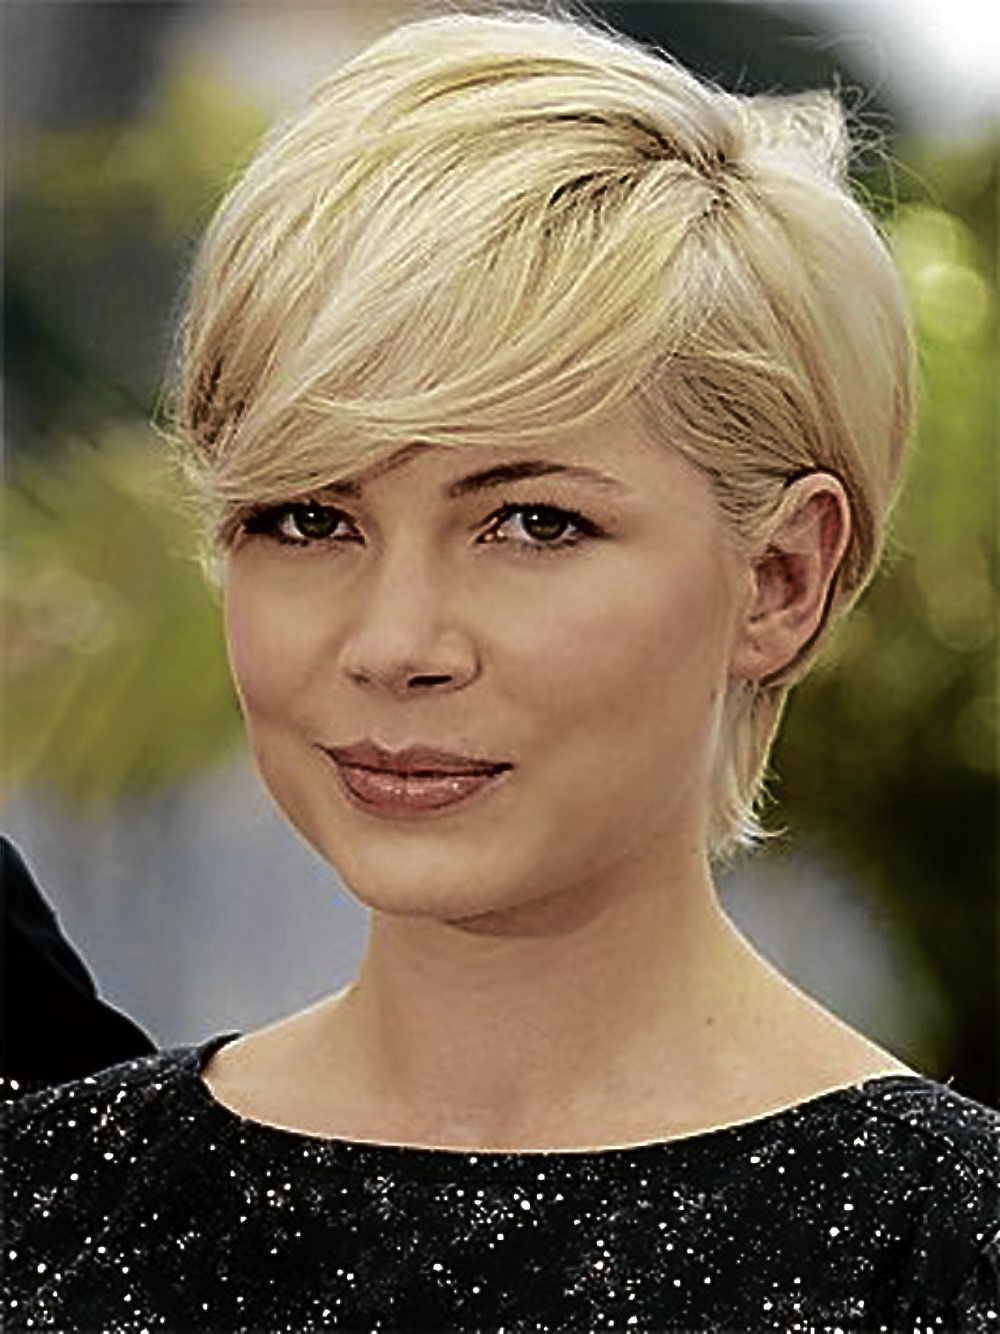 5 Things To Remember Before Getting That Pixie | Inquirer Lifestyle Throughout Short Hairstyles For Thick Hair And Long Face (View 9 of 25)